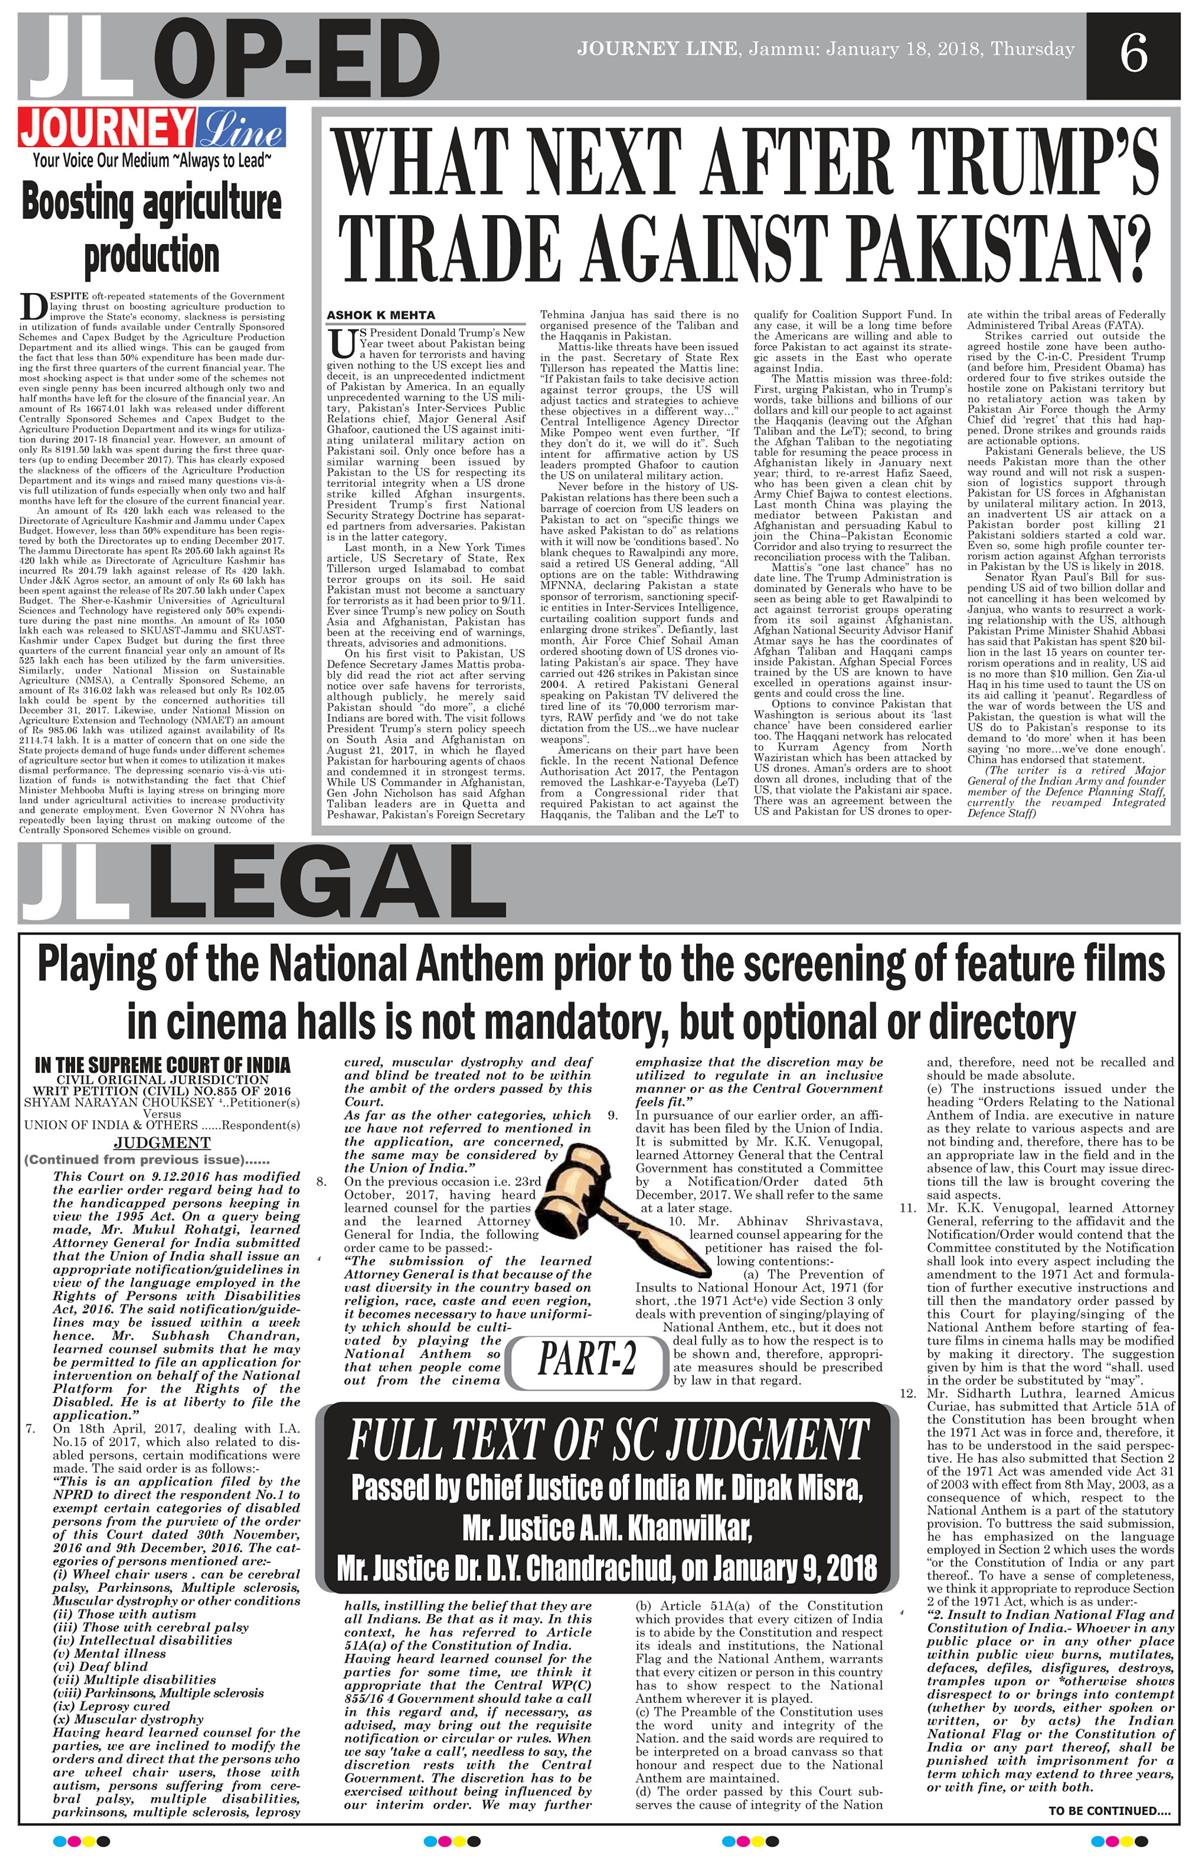 Journey Line E-Paper: Daily Newspaper Jammu Kashmir, Published from